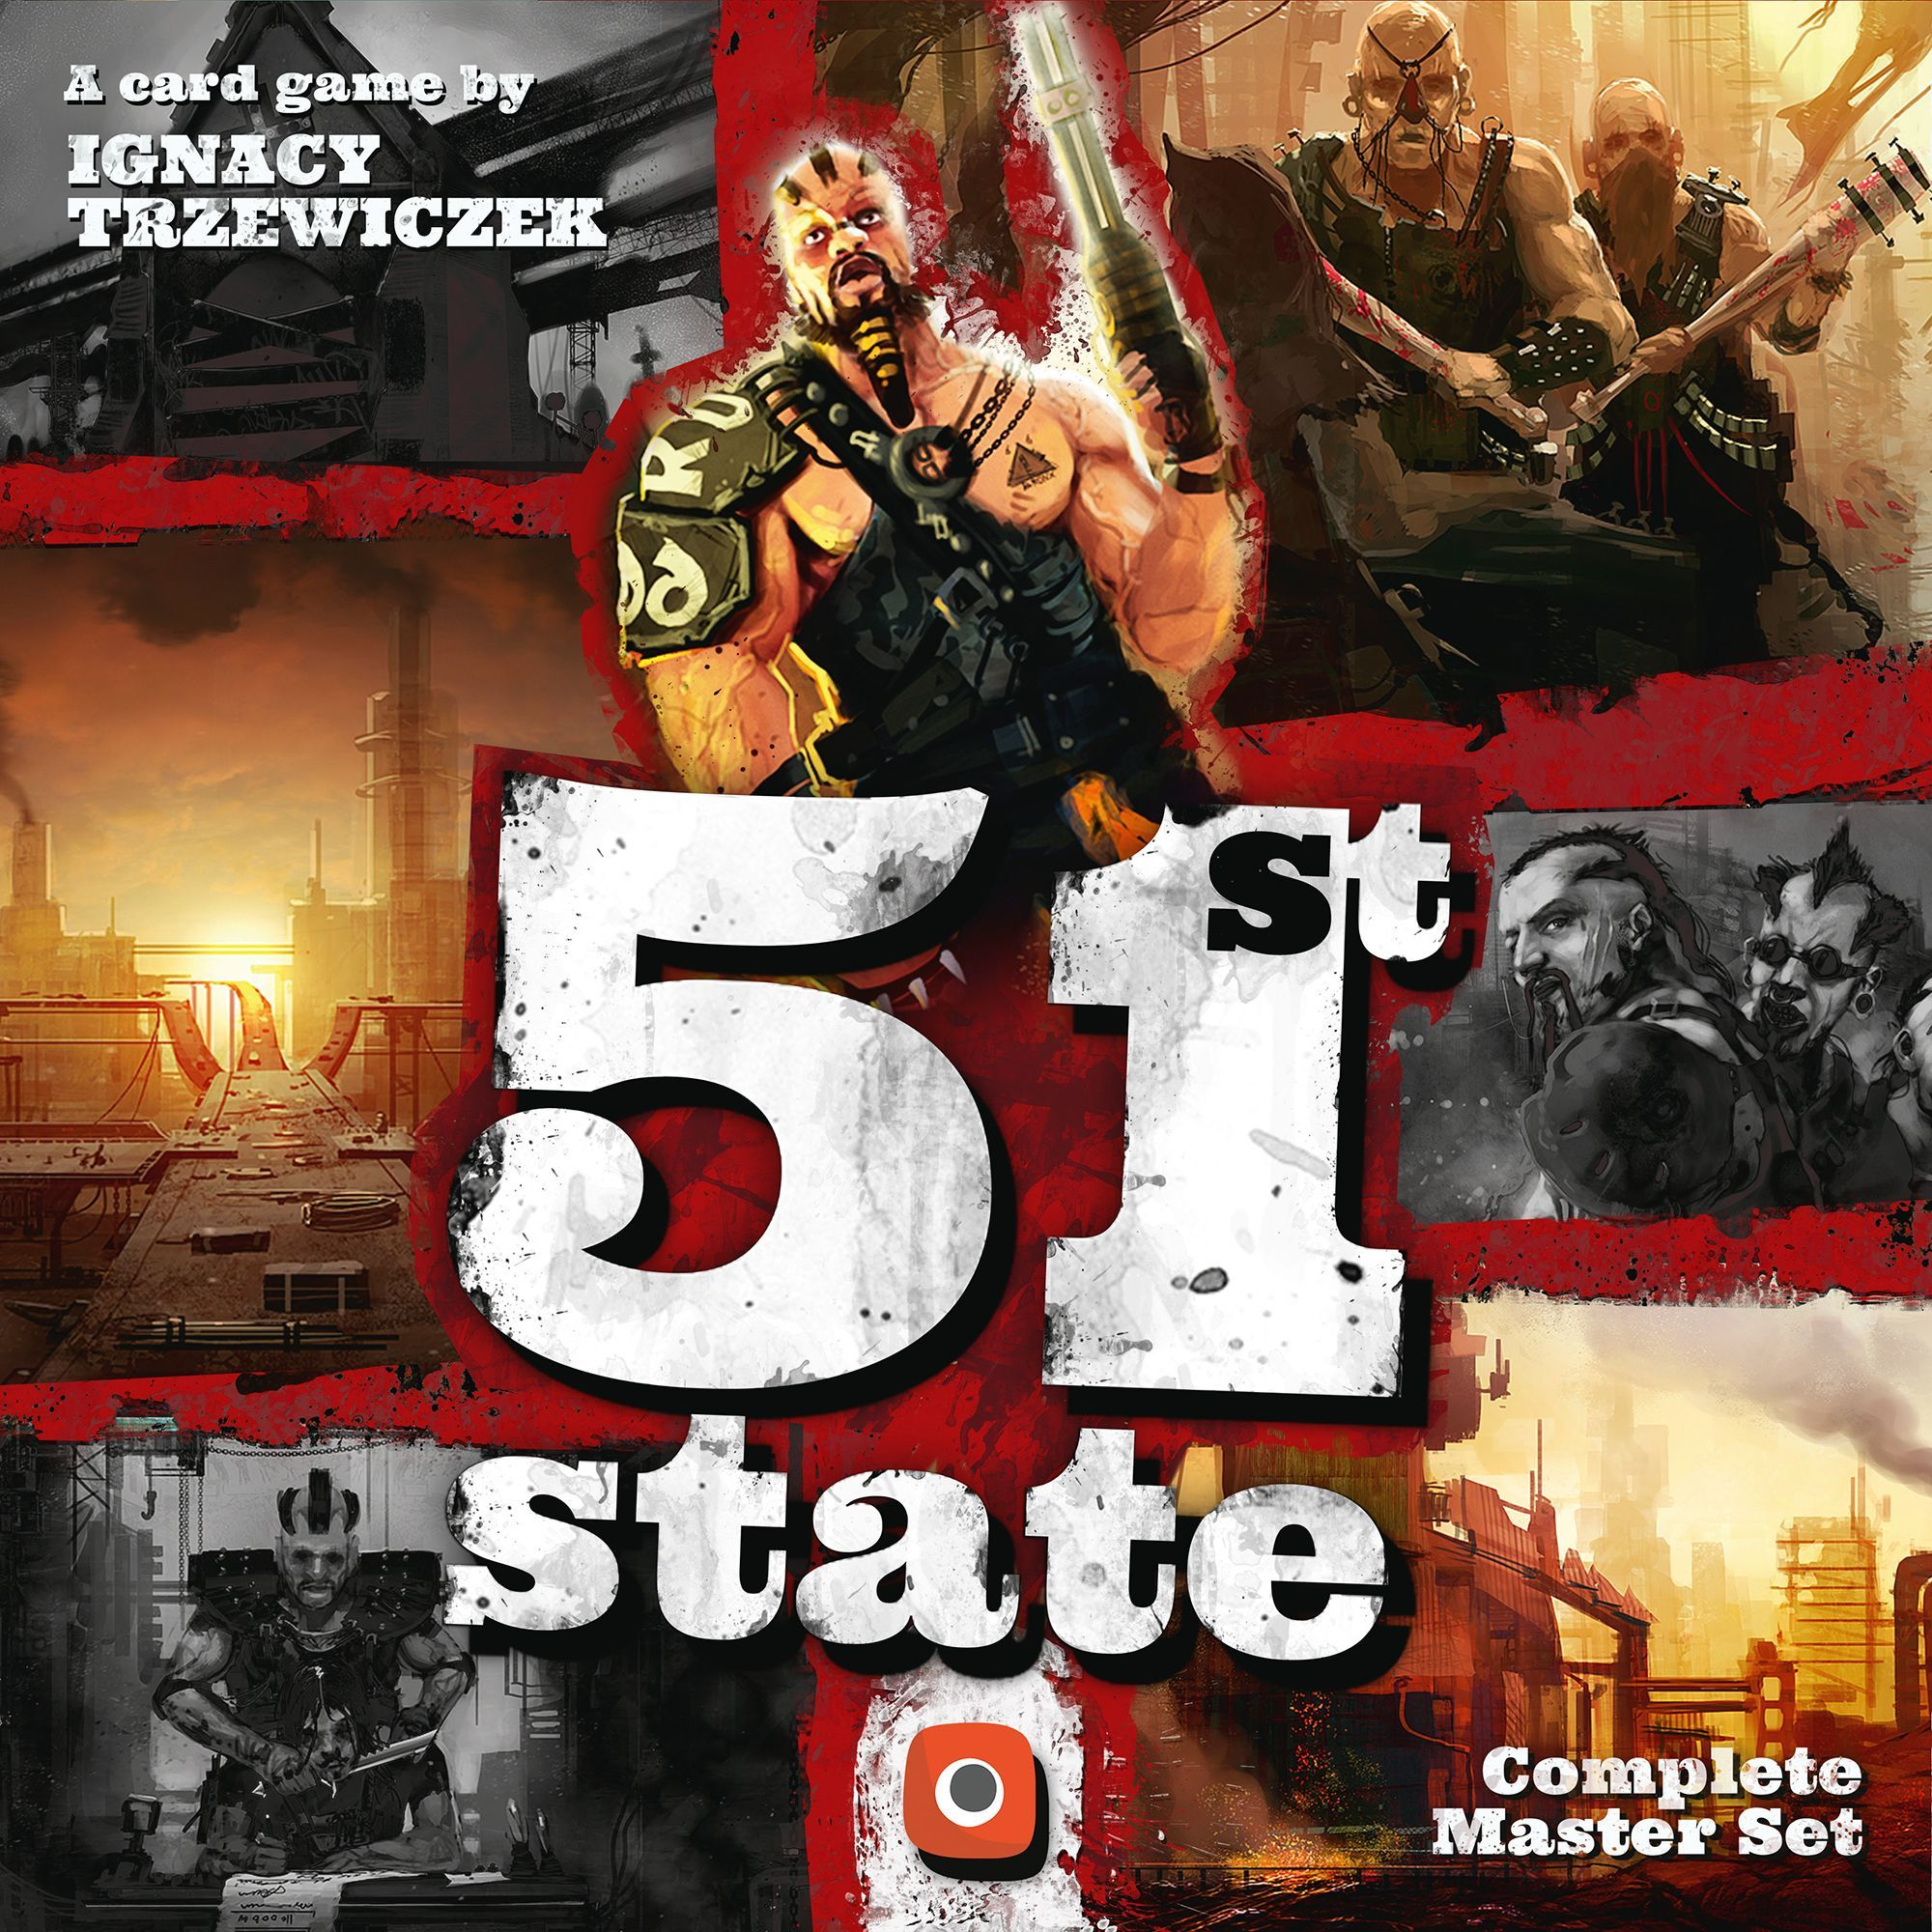 Main image for 51st State: Master Set board game